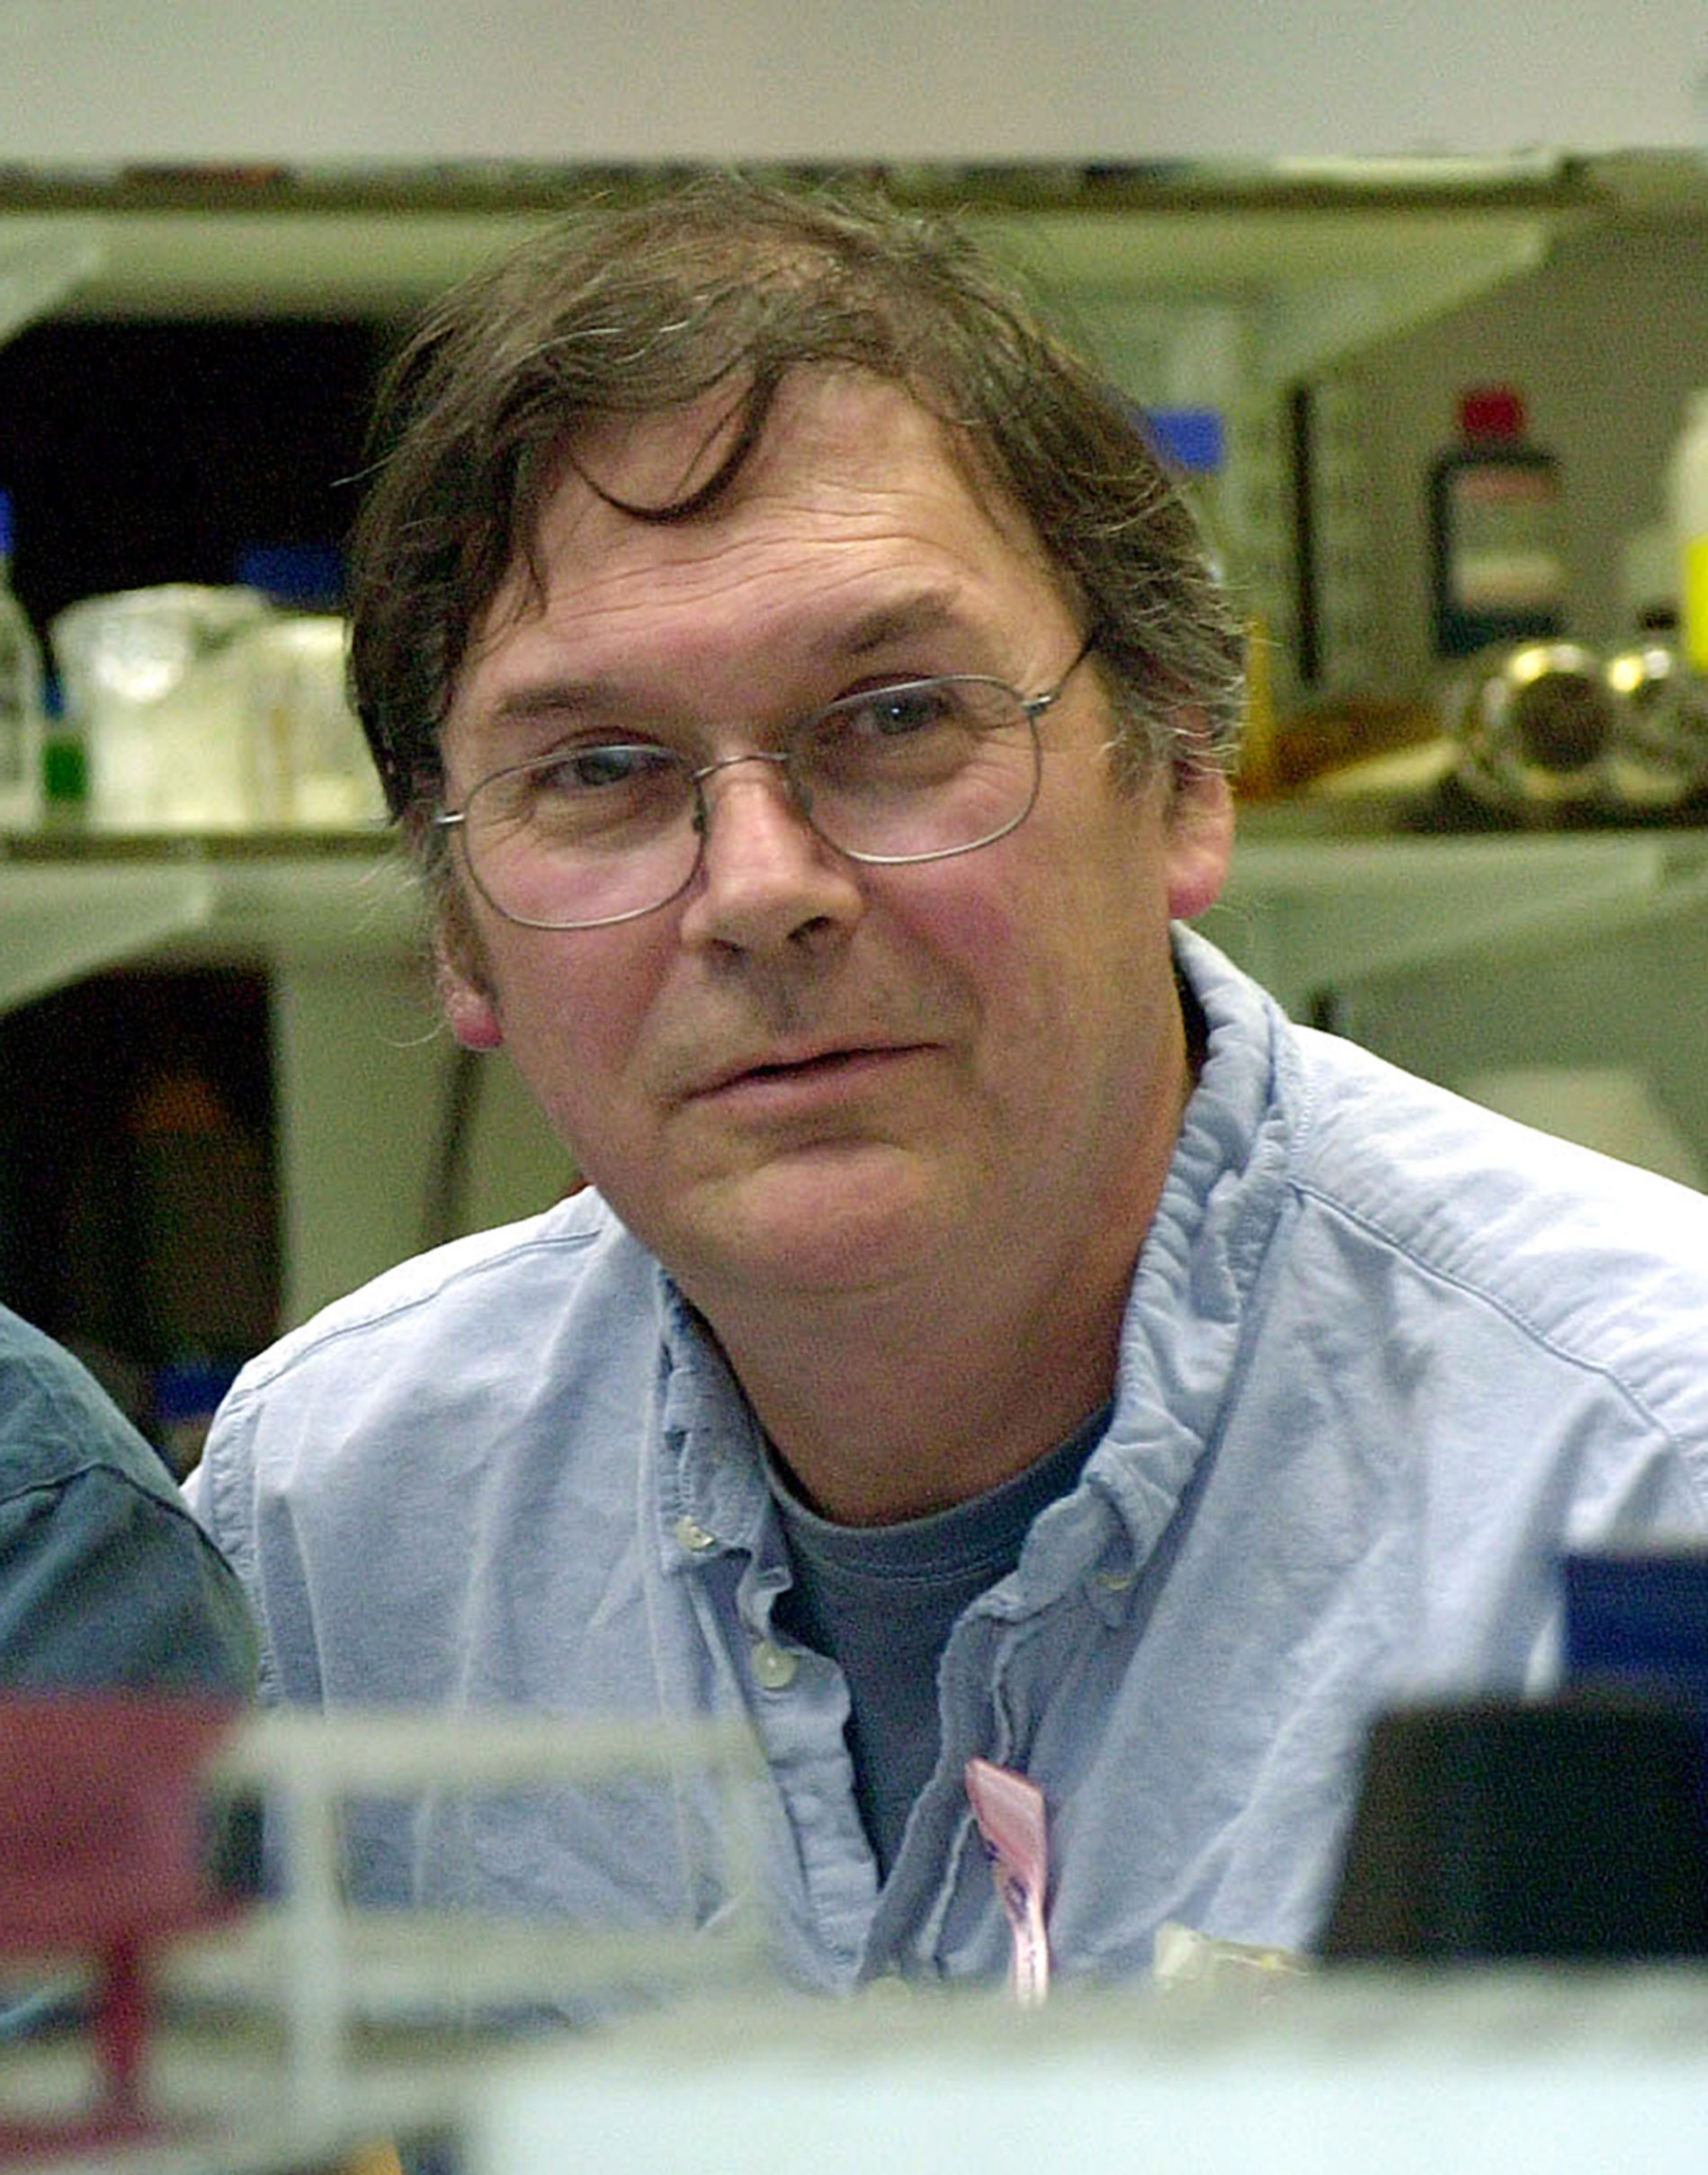 File photo dated August 10, 2001 of Sir Tim Hunt, as The Royal Society moved to distance itself from comments he reportedly made about women in science.